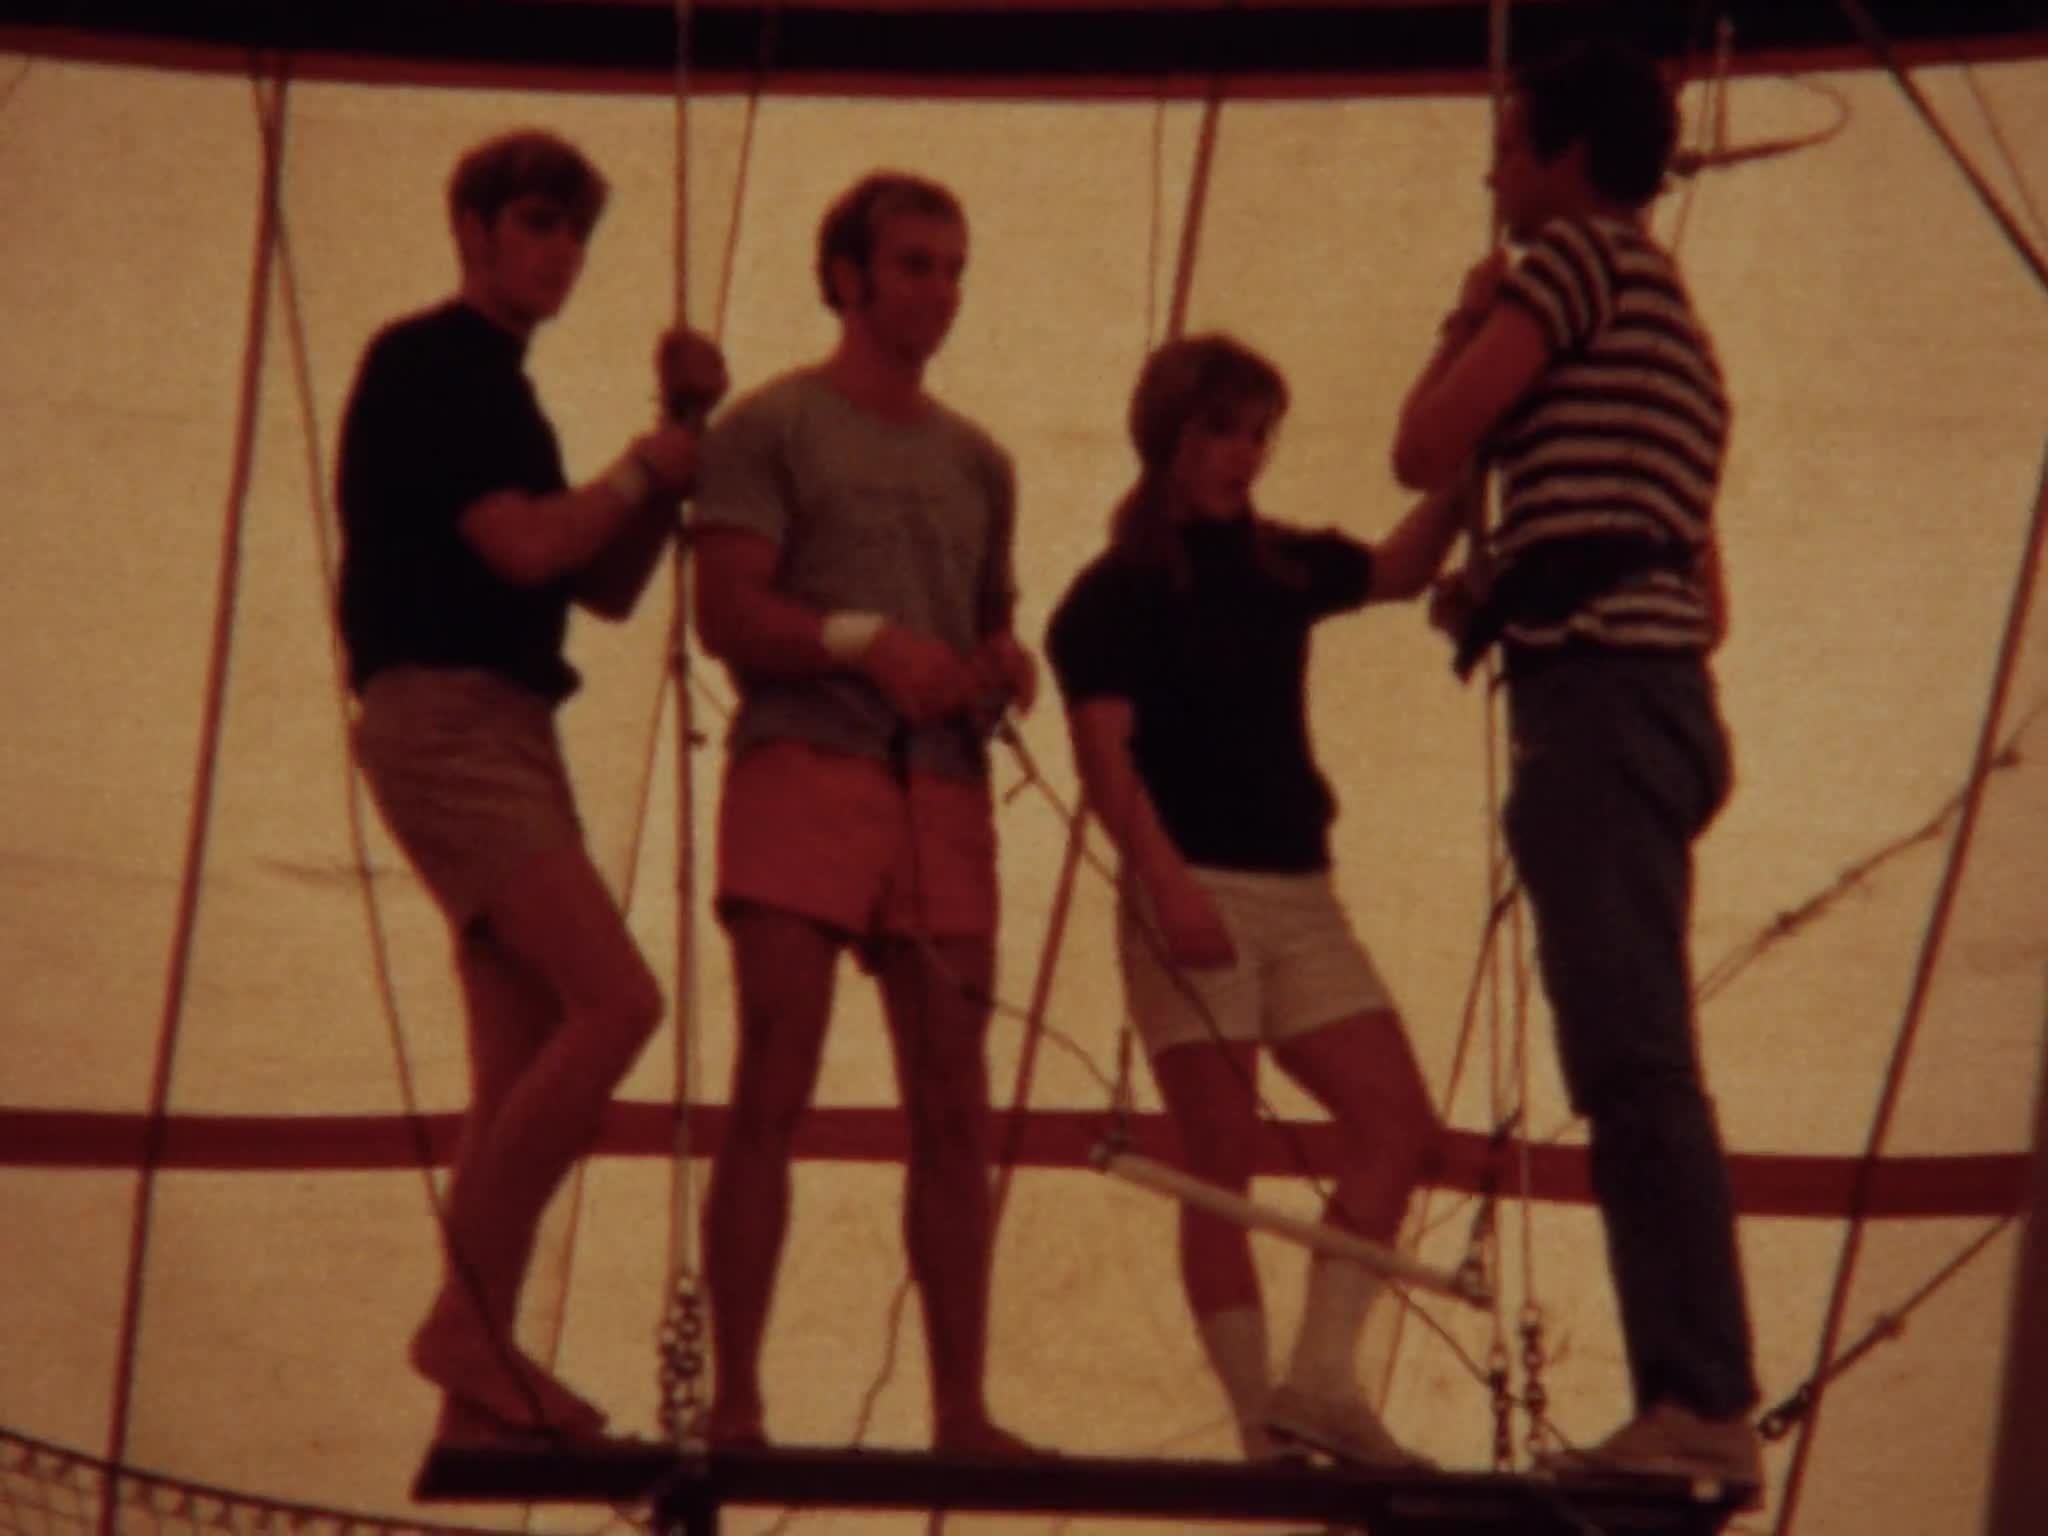 George Plempton Rider Guests of Circus Part II